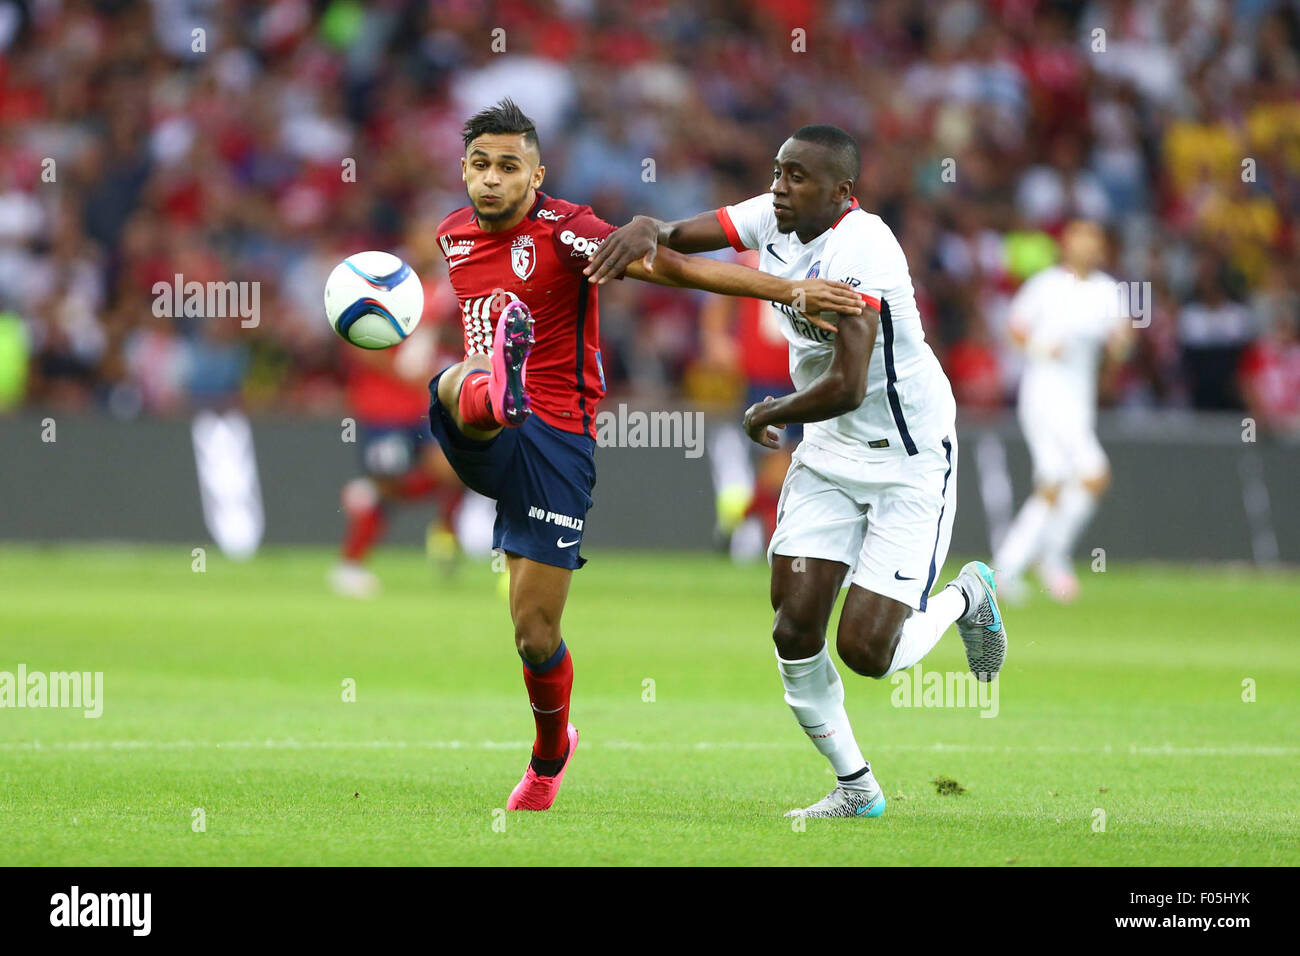 Lille, France. 07th Aug, 2015. French League 1 football ...